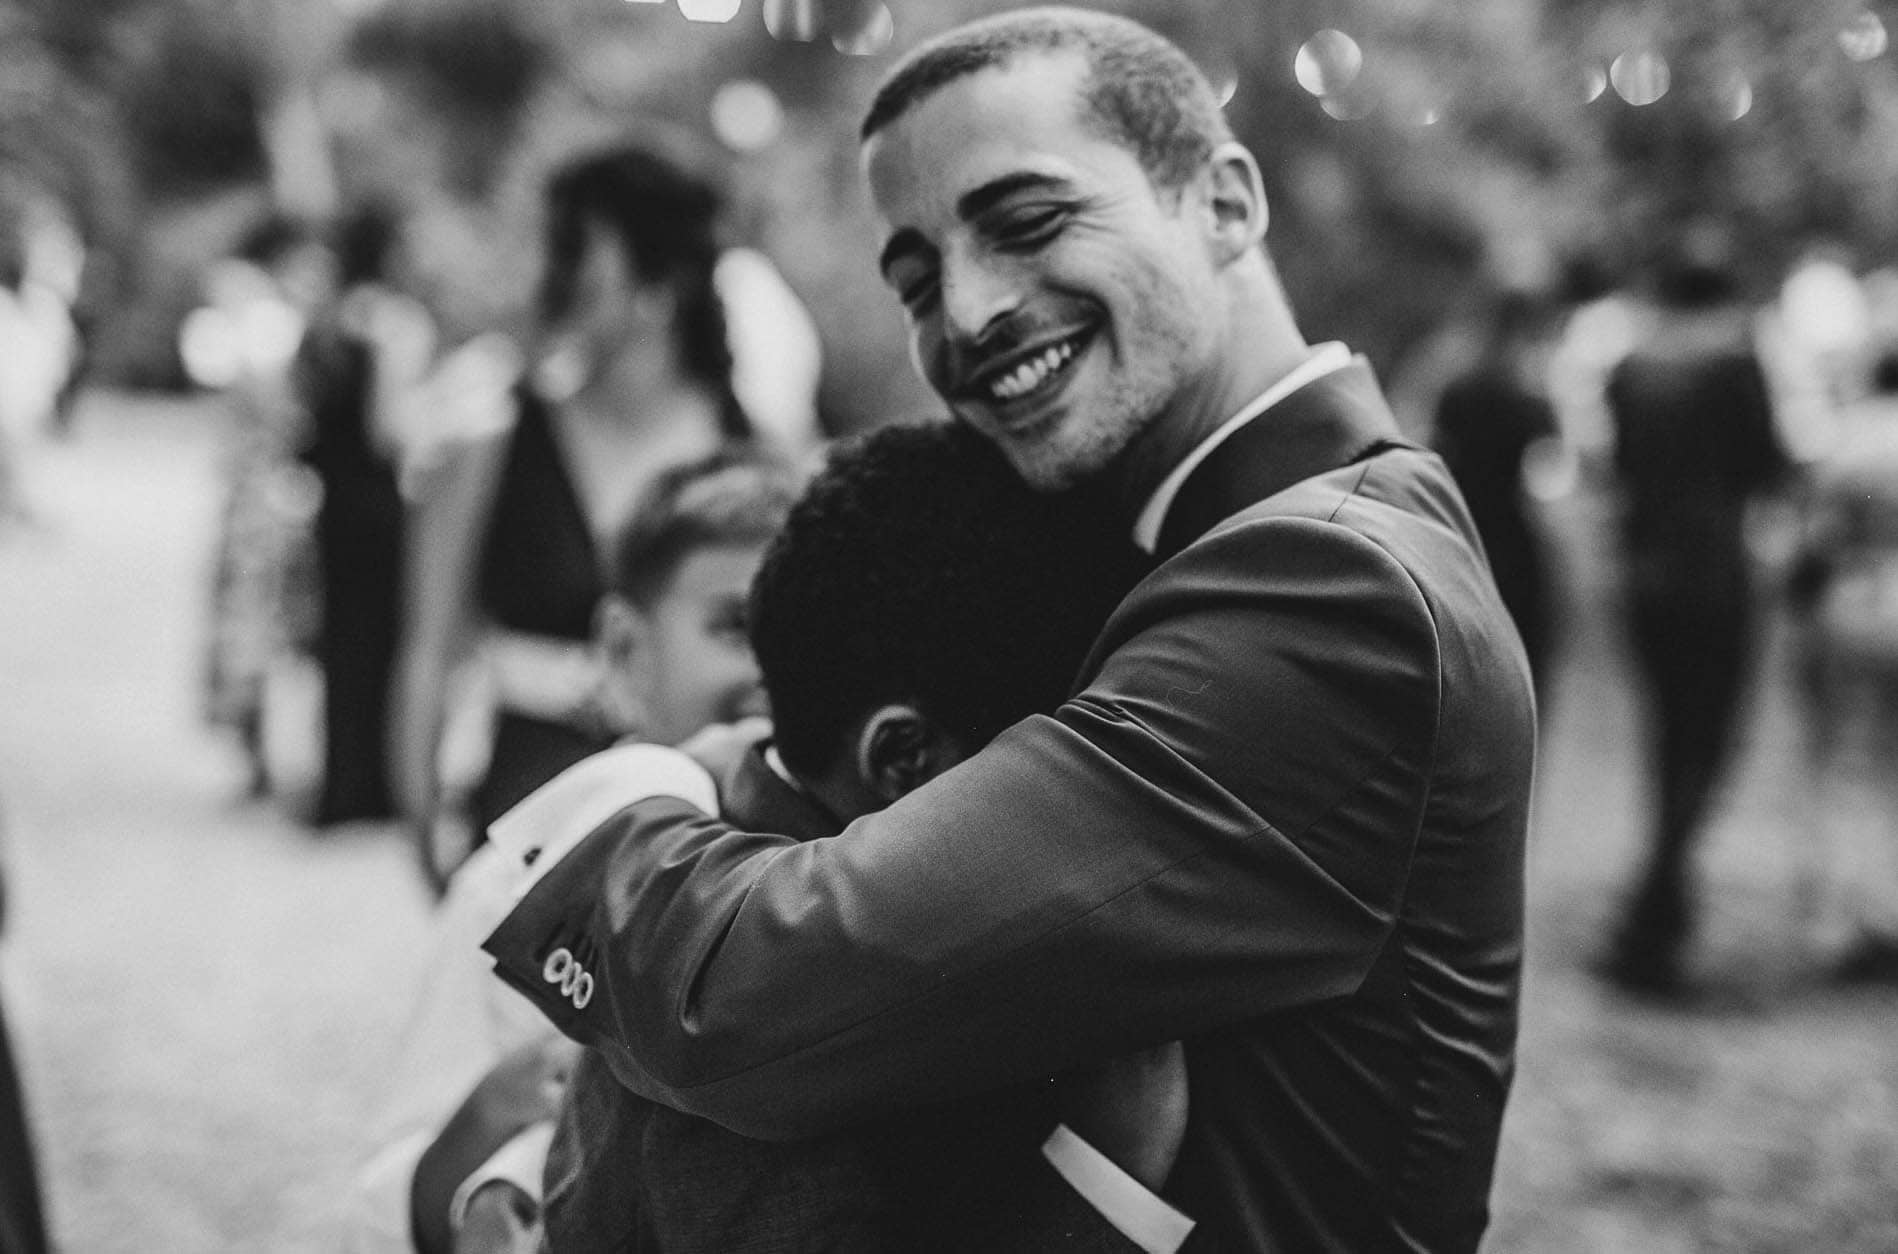 groom hugs his son